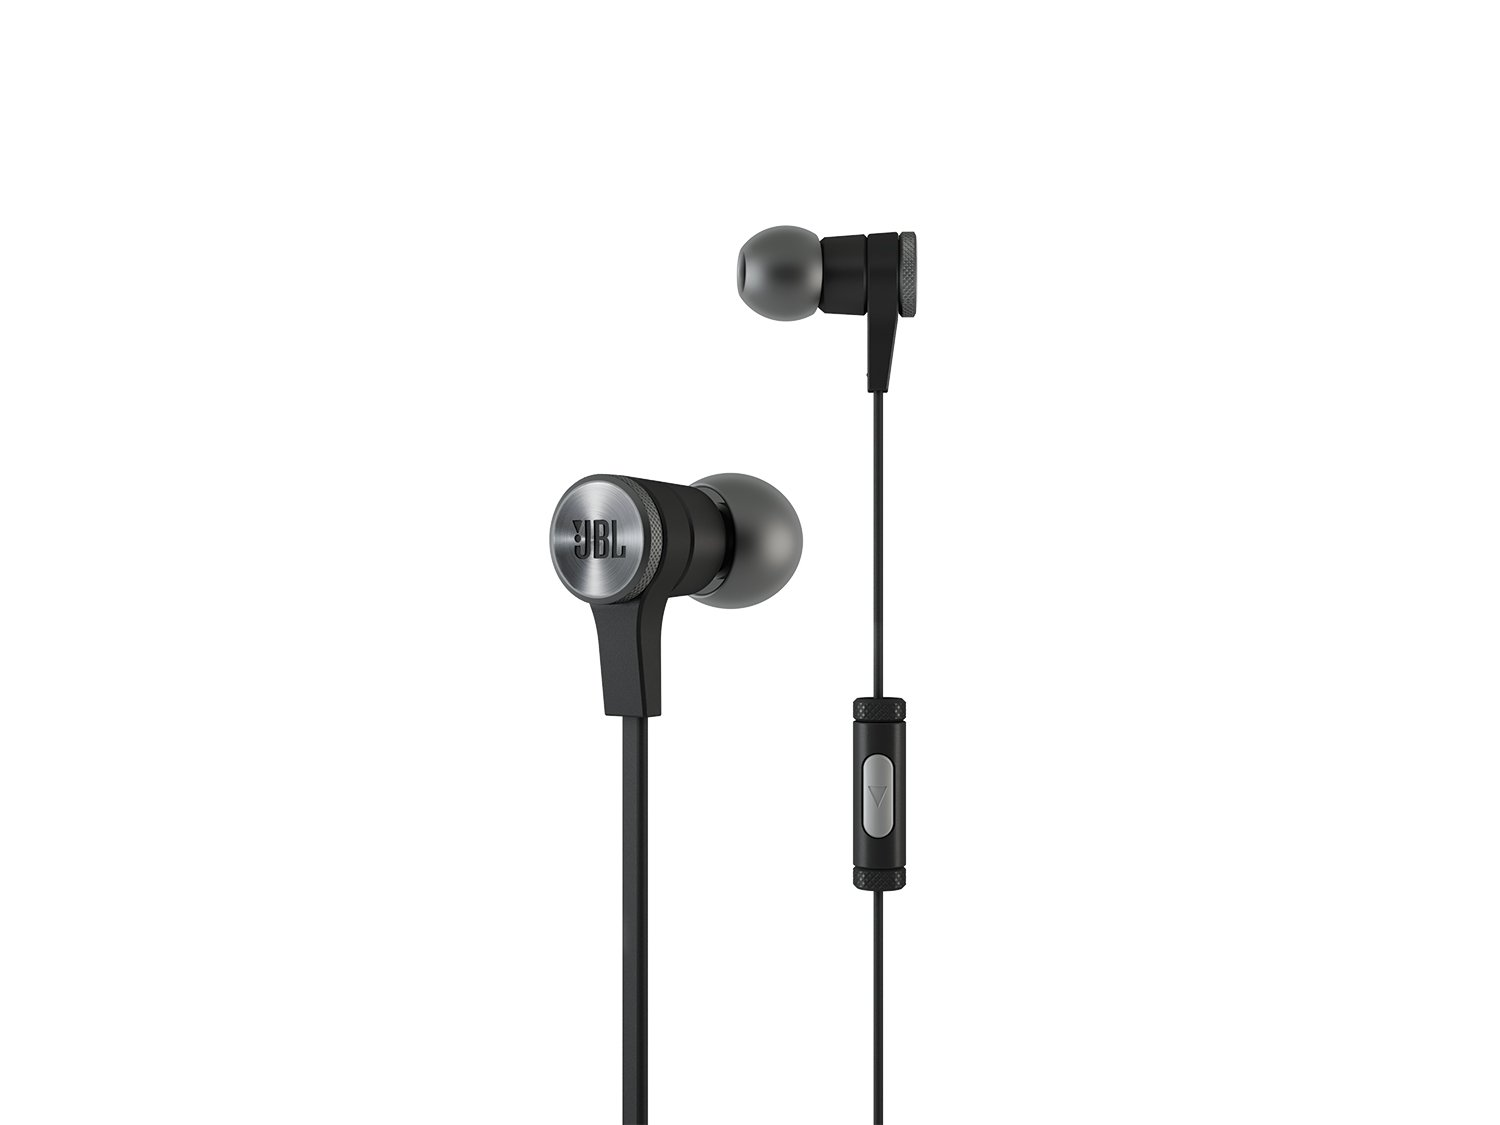 JBL E10BLK In-Ear Headphones with JBL-Quality Sound and Advanced Styling, Black